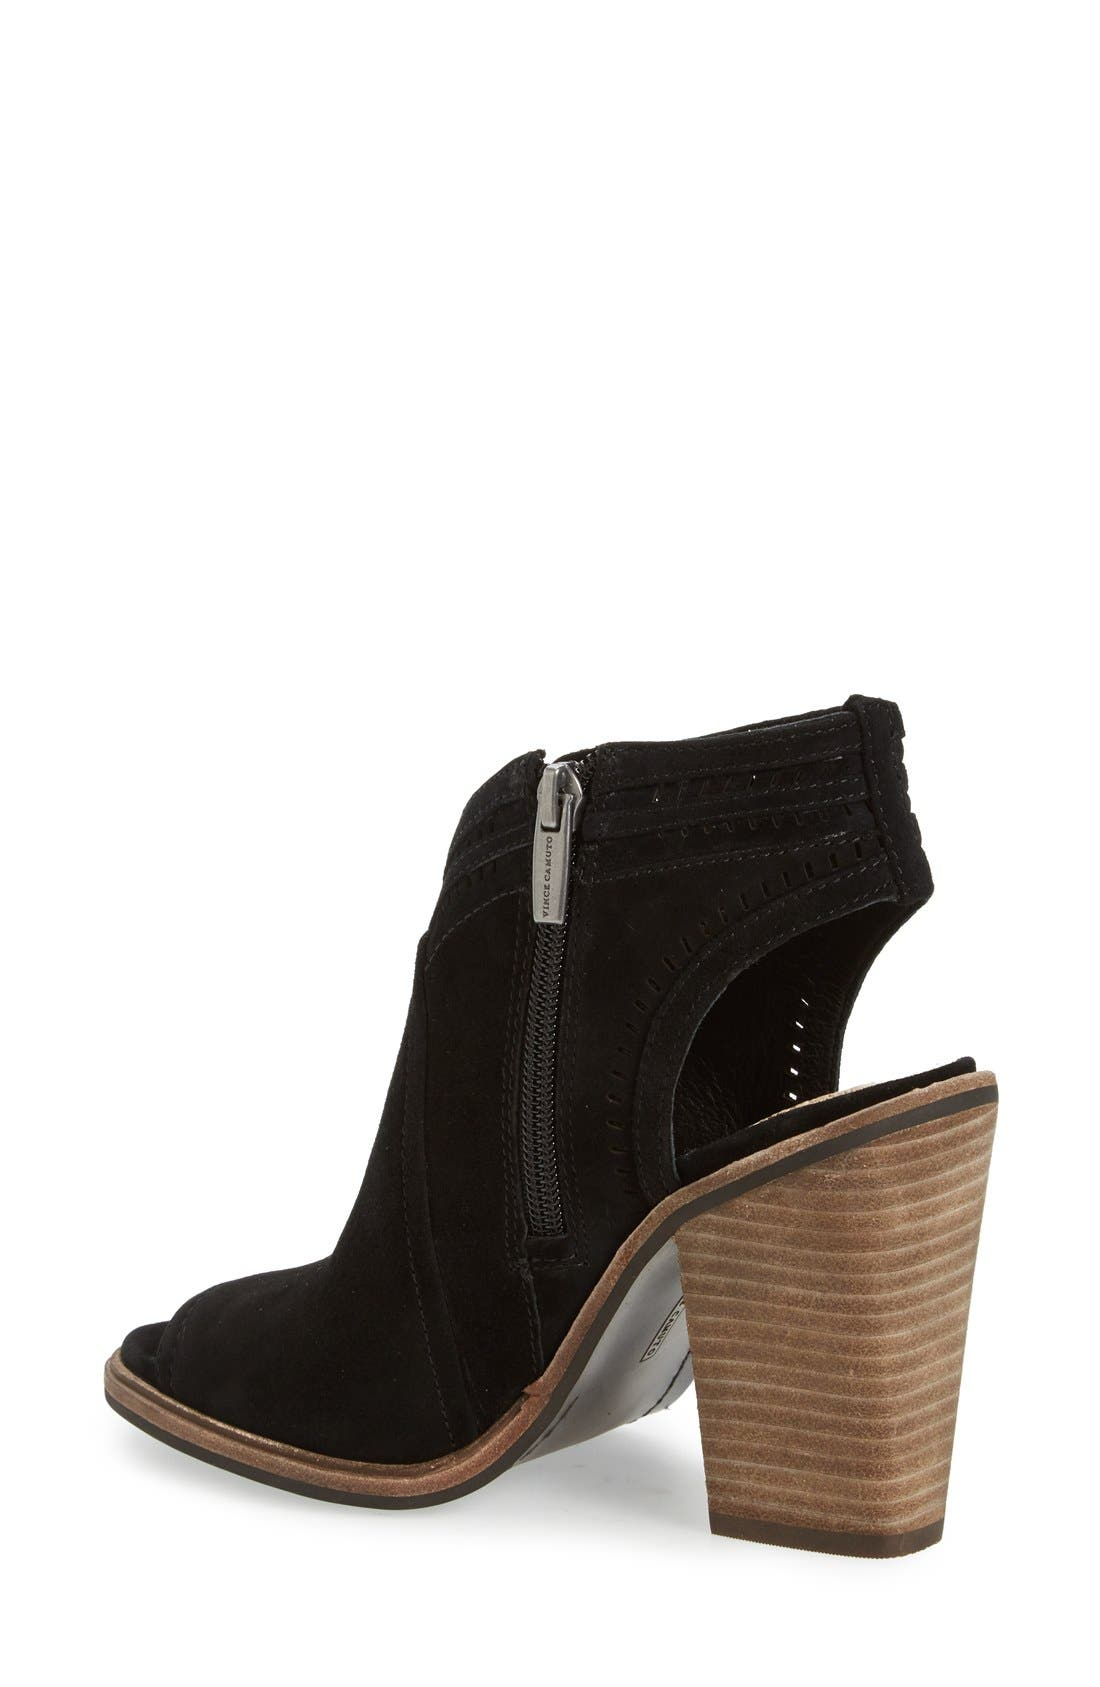 'Koral' Perforated Open Toe Bootie,                             Alternate thumbnail 2, color,                             001